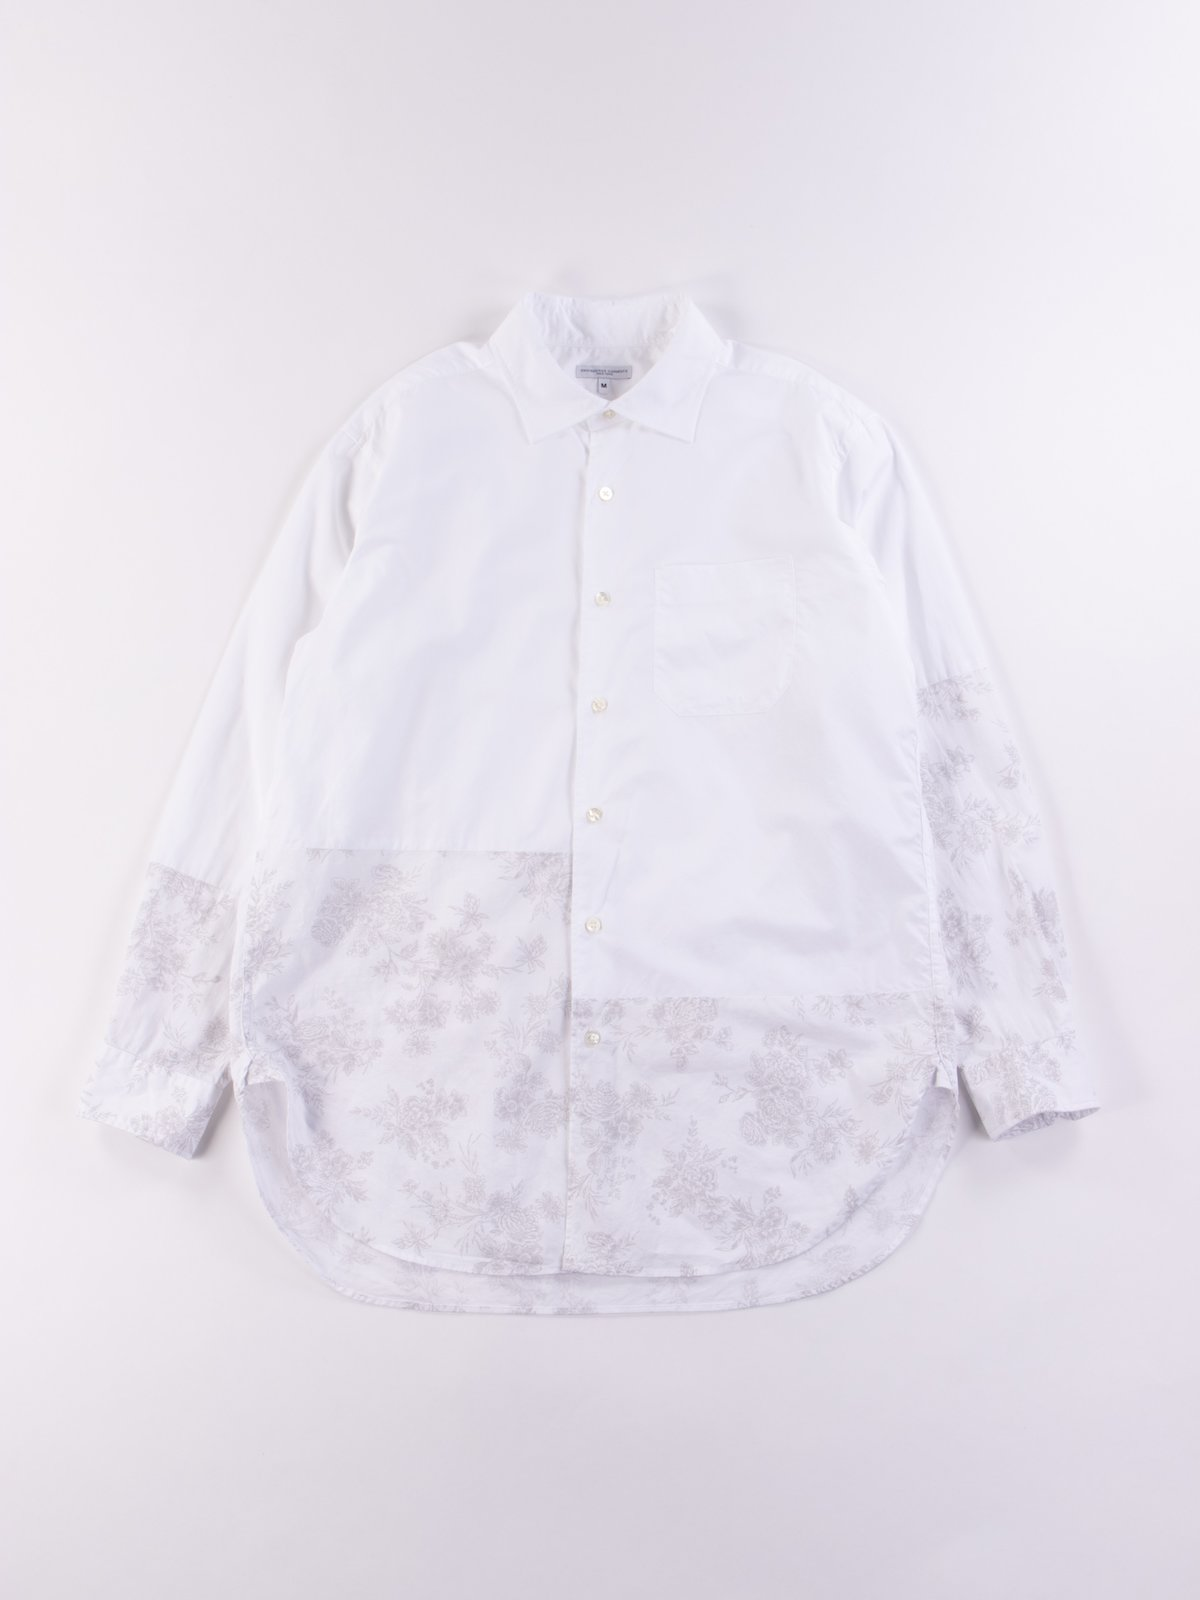 White 100's 2Ply Broadcloth Spread Collar Shirt SS20 - Image 1